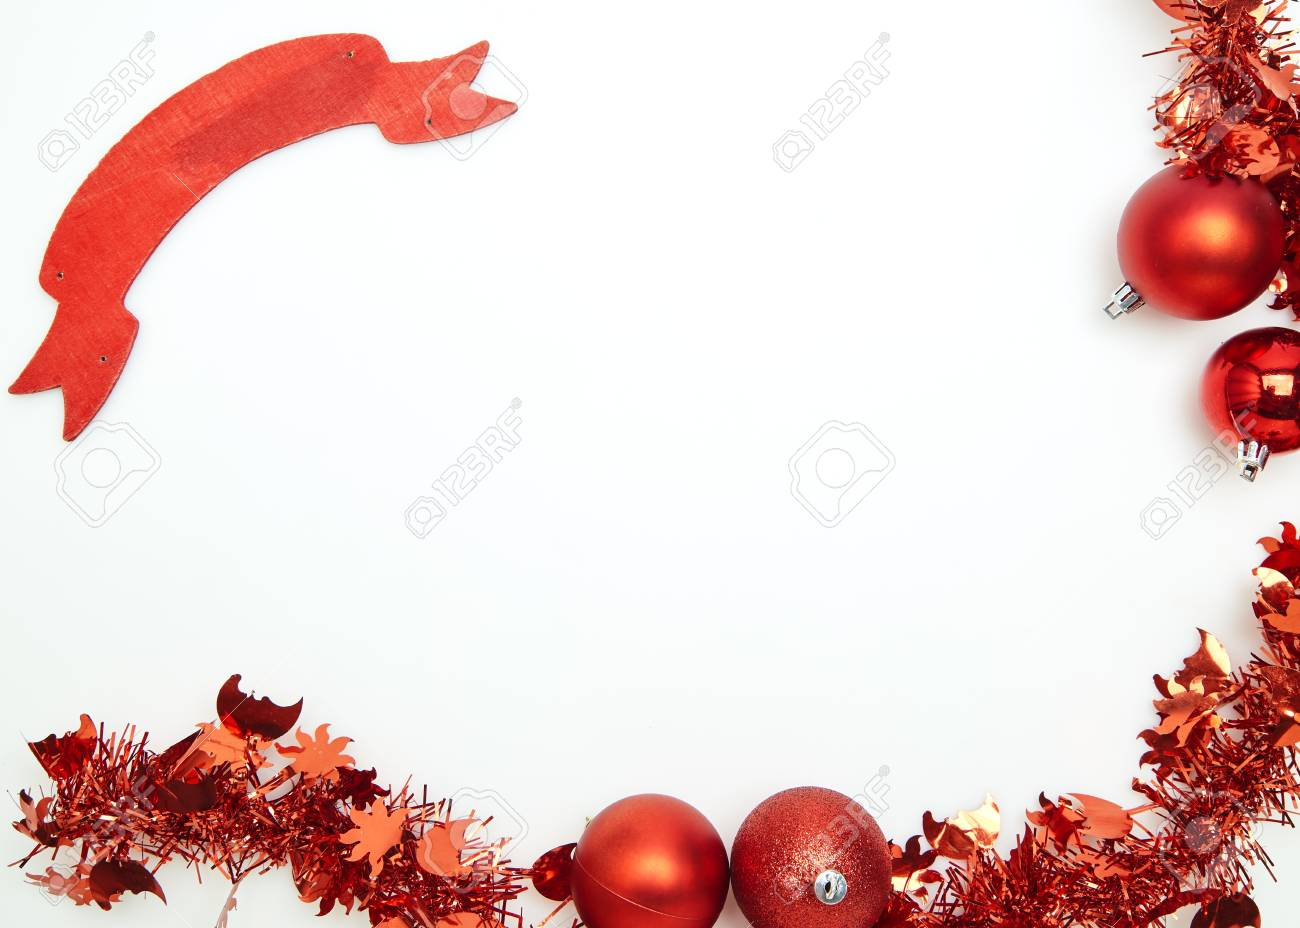 New year Christmas red tinsel on a white background - 110647868